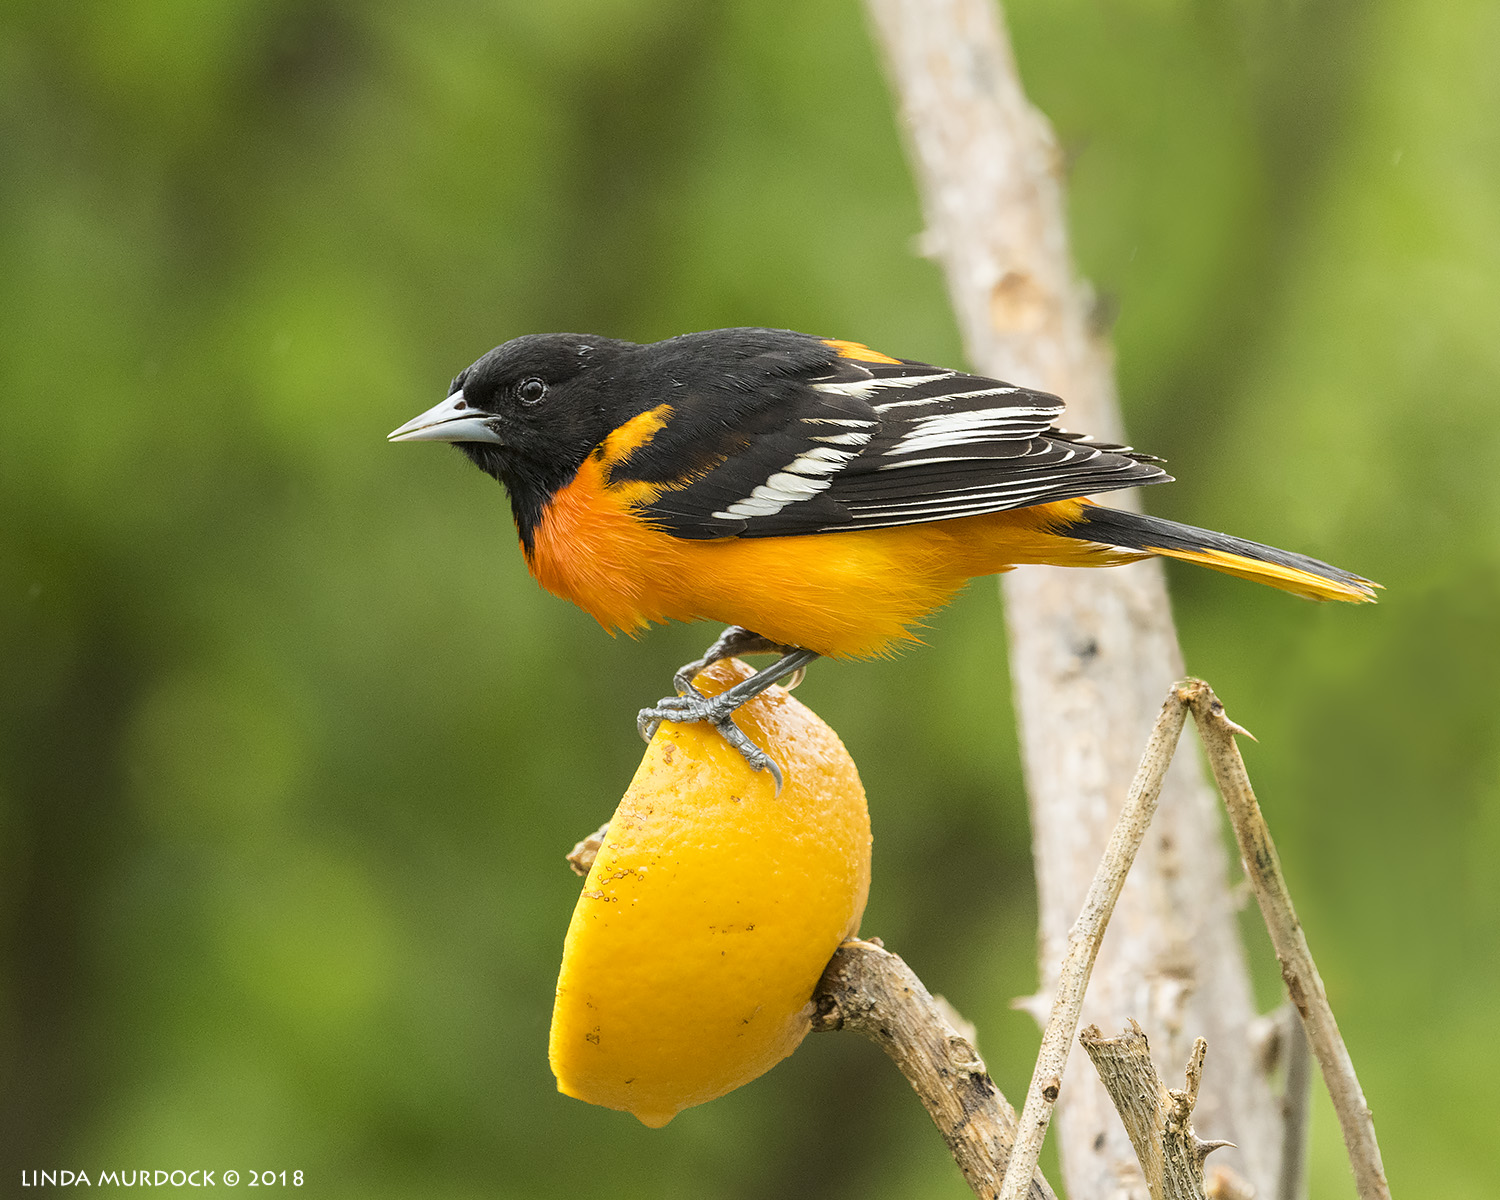 Baltimore Oriole and orange Nikon D810 with NIKKOR 500mm f/4E VR + Nikon 1.4x TC ~ 1/500   sec f/6.3 ISO 2500; tripod